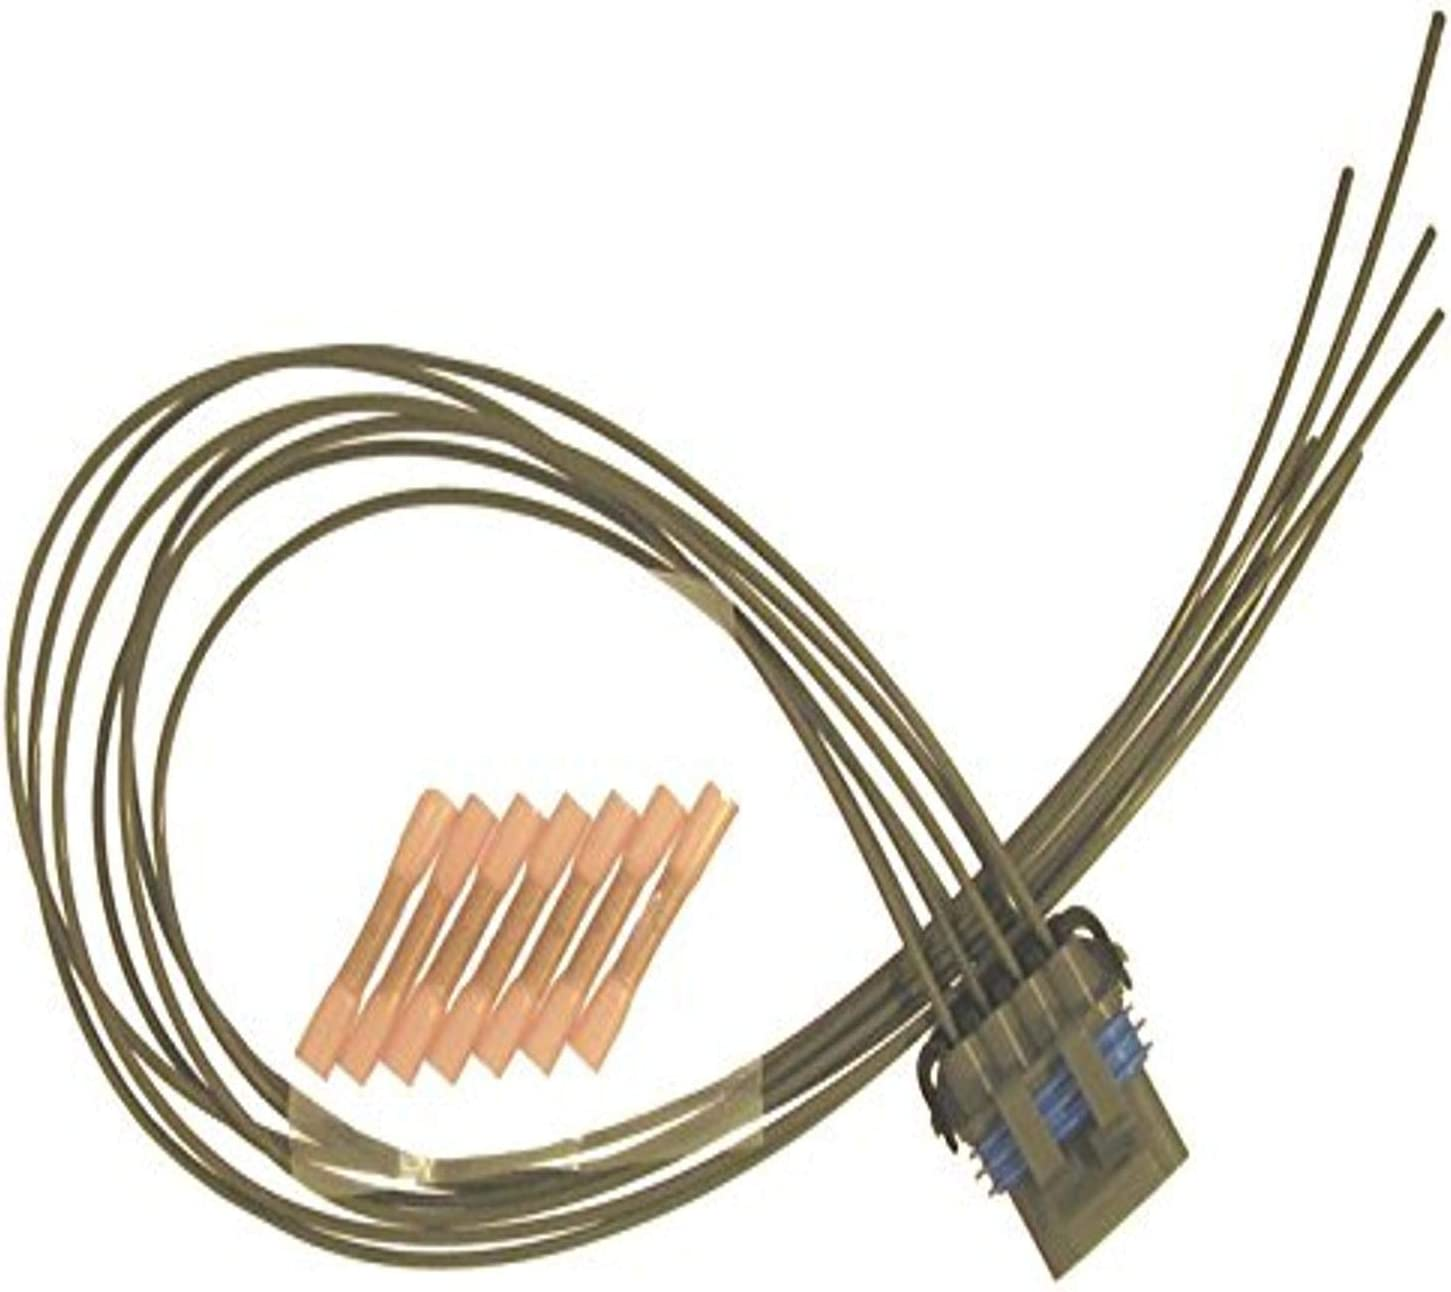 Amazon.com: Transmission Parts Direct (15305887) Wire Harness Repair Kit,  Park/Neutral Switch 4L60E/4L65E (1995-Up): AutomotiveAmazon.com